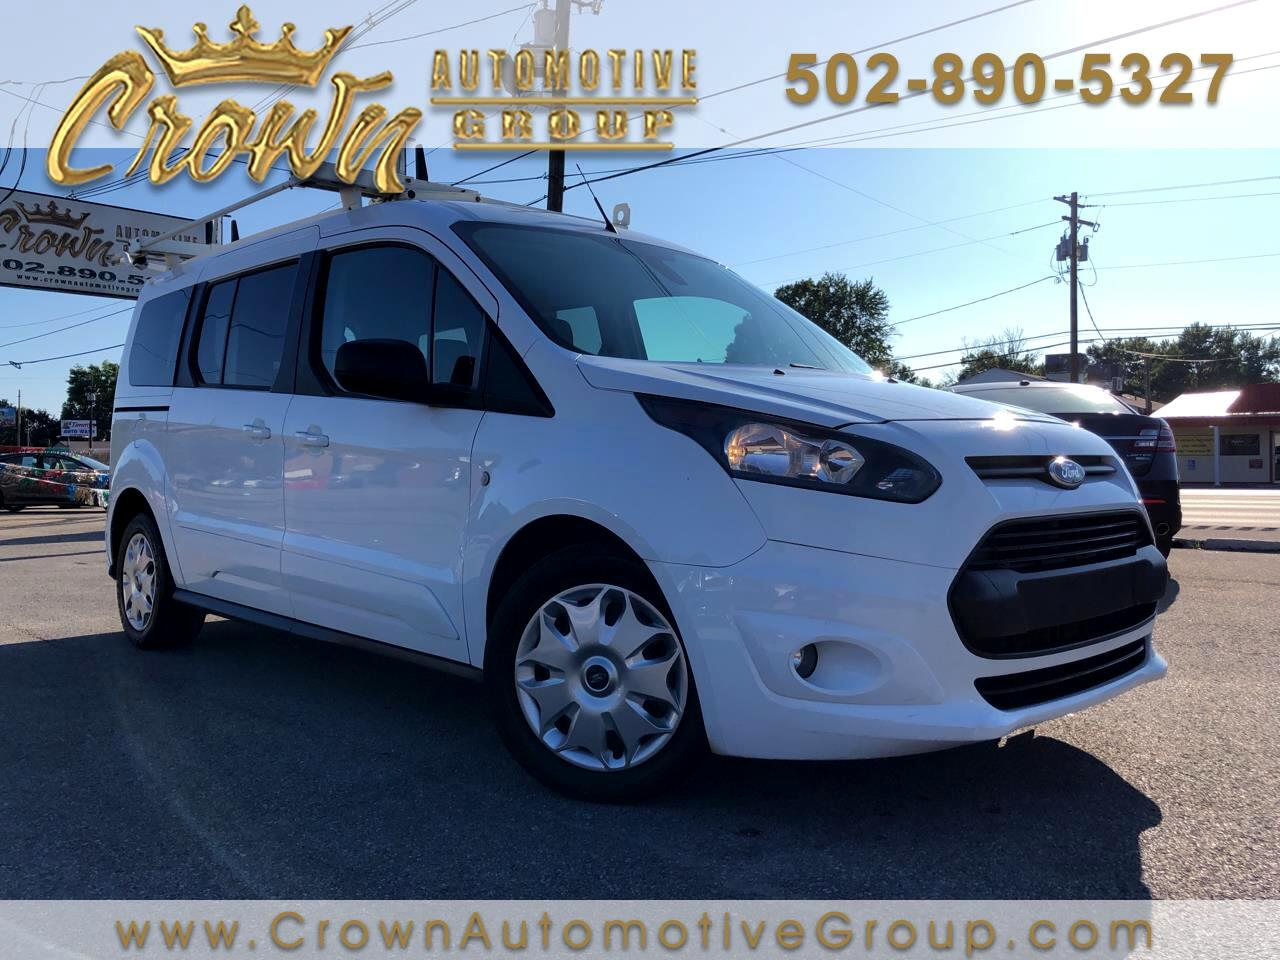 2015 Ford Transit Connect Wagon 4dr Wgn LWB XLT